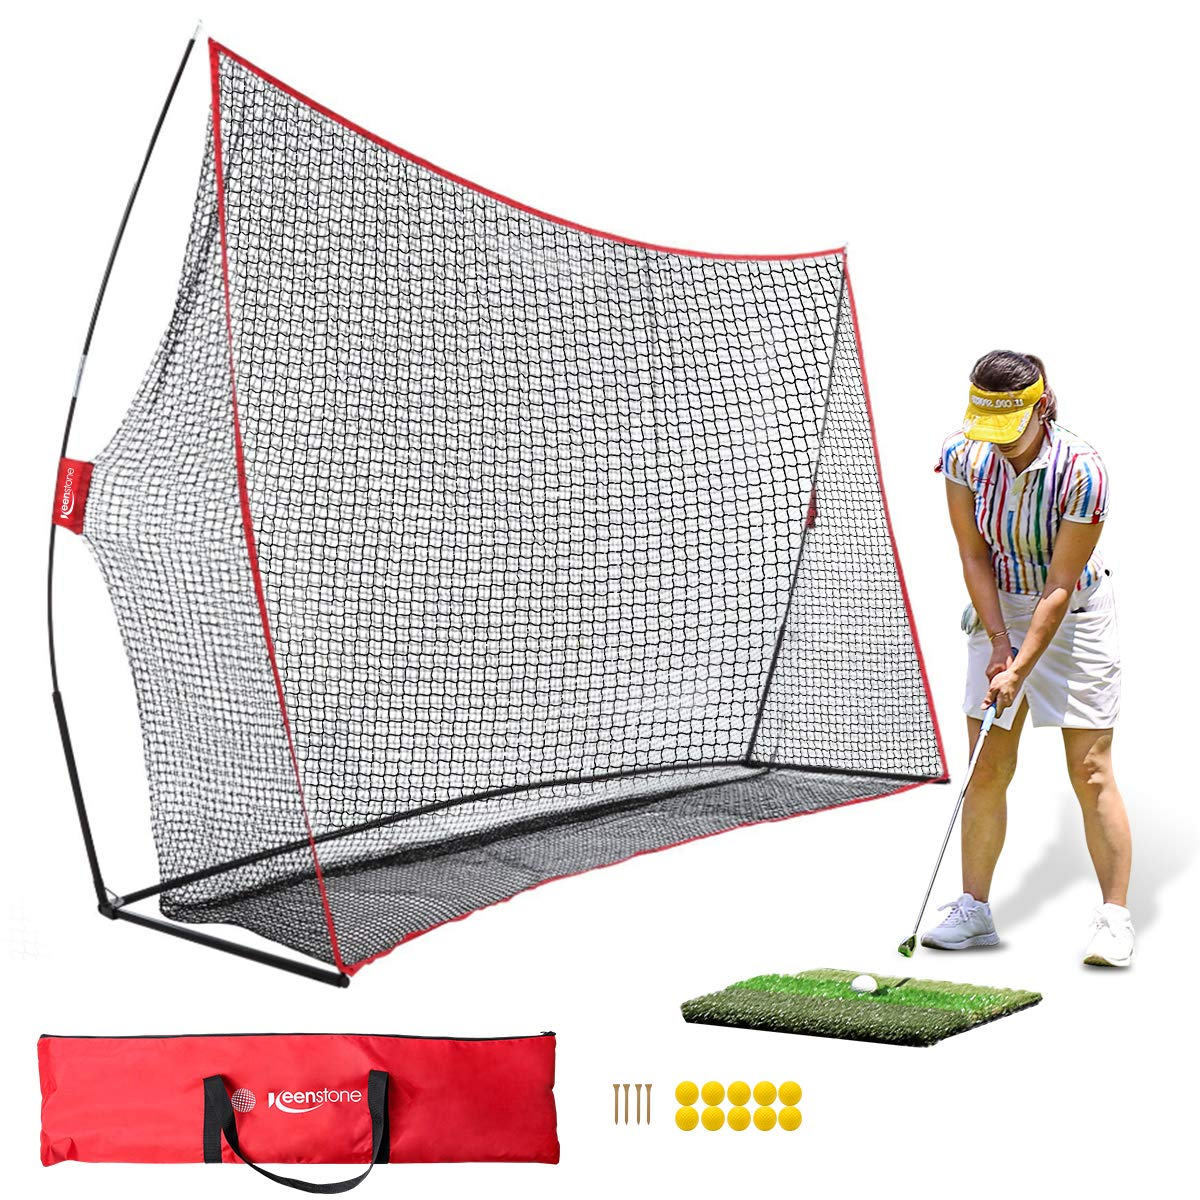 Keenstone 10x7ft Portable Golf Net Golf Practice Net for Indoor and Outdoor Hitting Driving and Chipping Practice with Tri Turf Hitting Mat, 4 Wooden Tees, 10 Foam Practice Balls, and Carry Bag by Keenstone